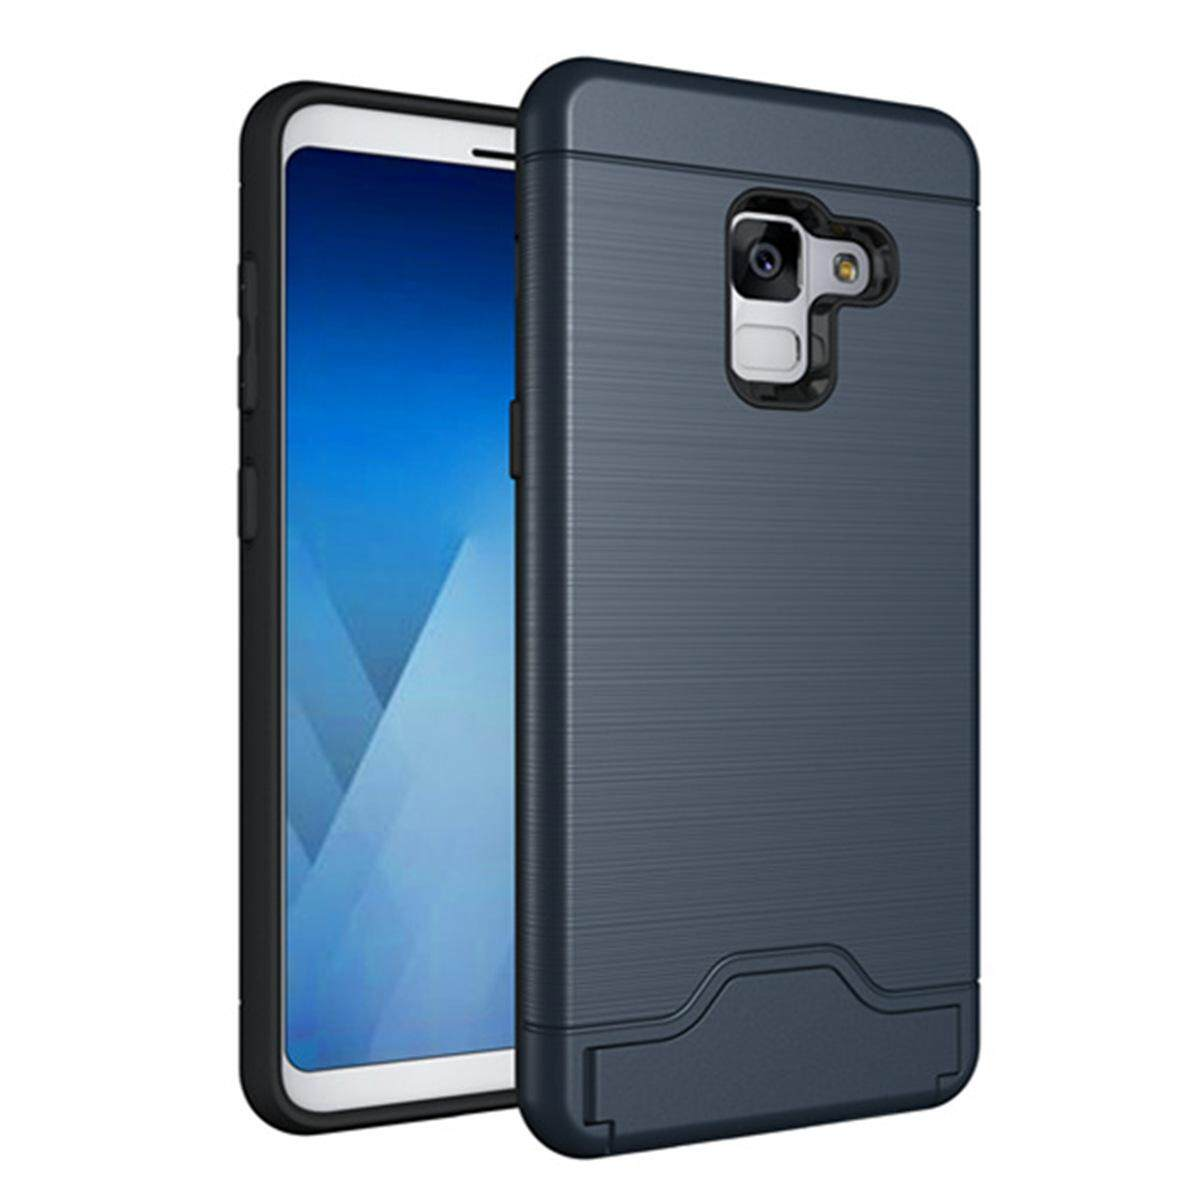 Hình ảnh for Samsung Galaxy A8(2018) Case [Hidden Card Slot] Hard PC + TPU Hybrid Back Armor Case Cover, with Cryptic Card Storage Slot, Skidproof, Minimalist - intl